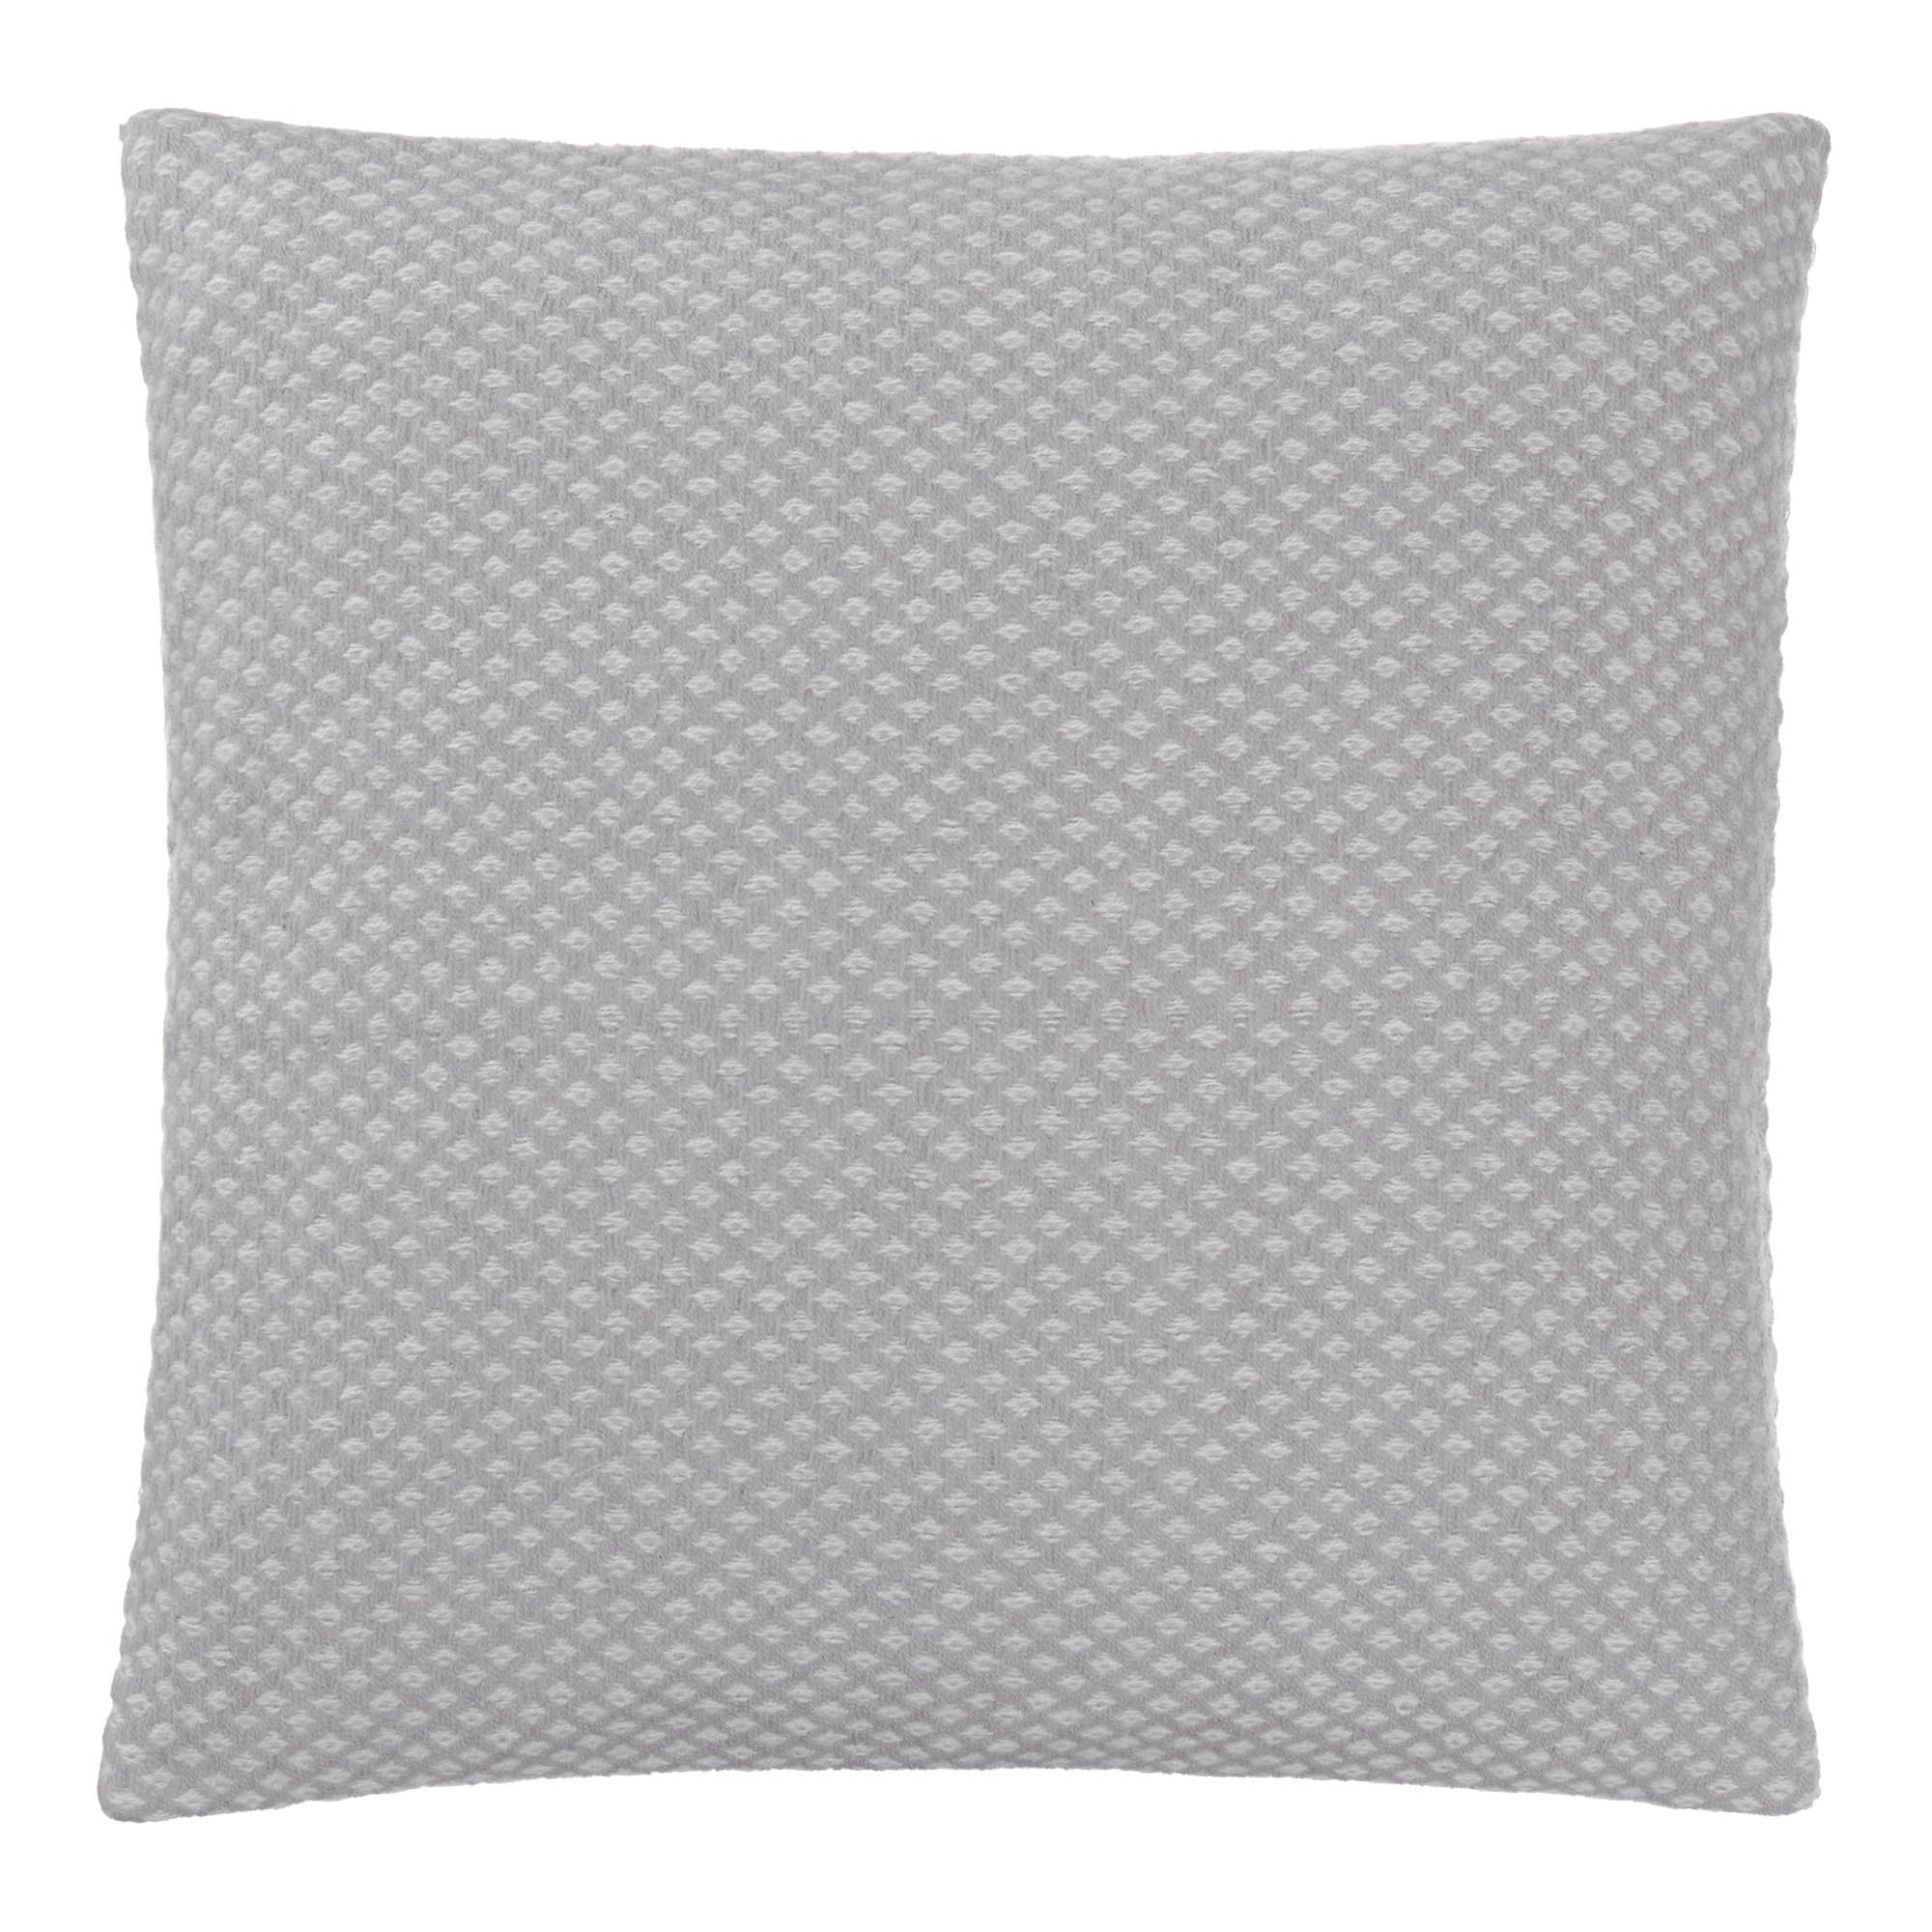 Alashan cushion cover, light grey & cream, 100% cashmere wool